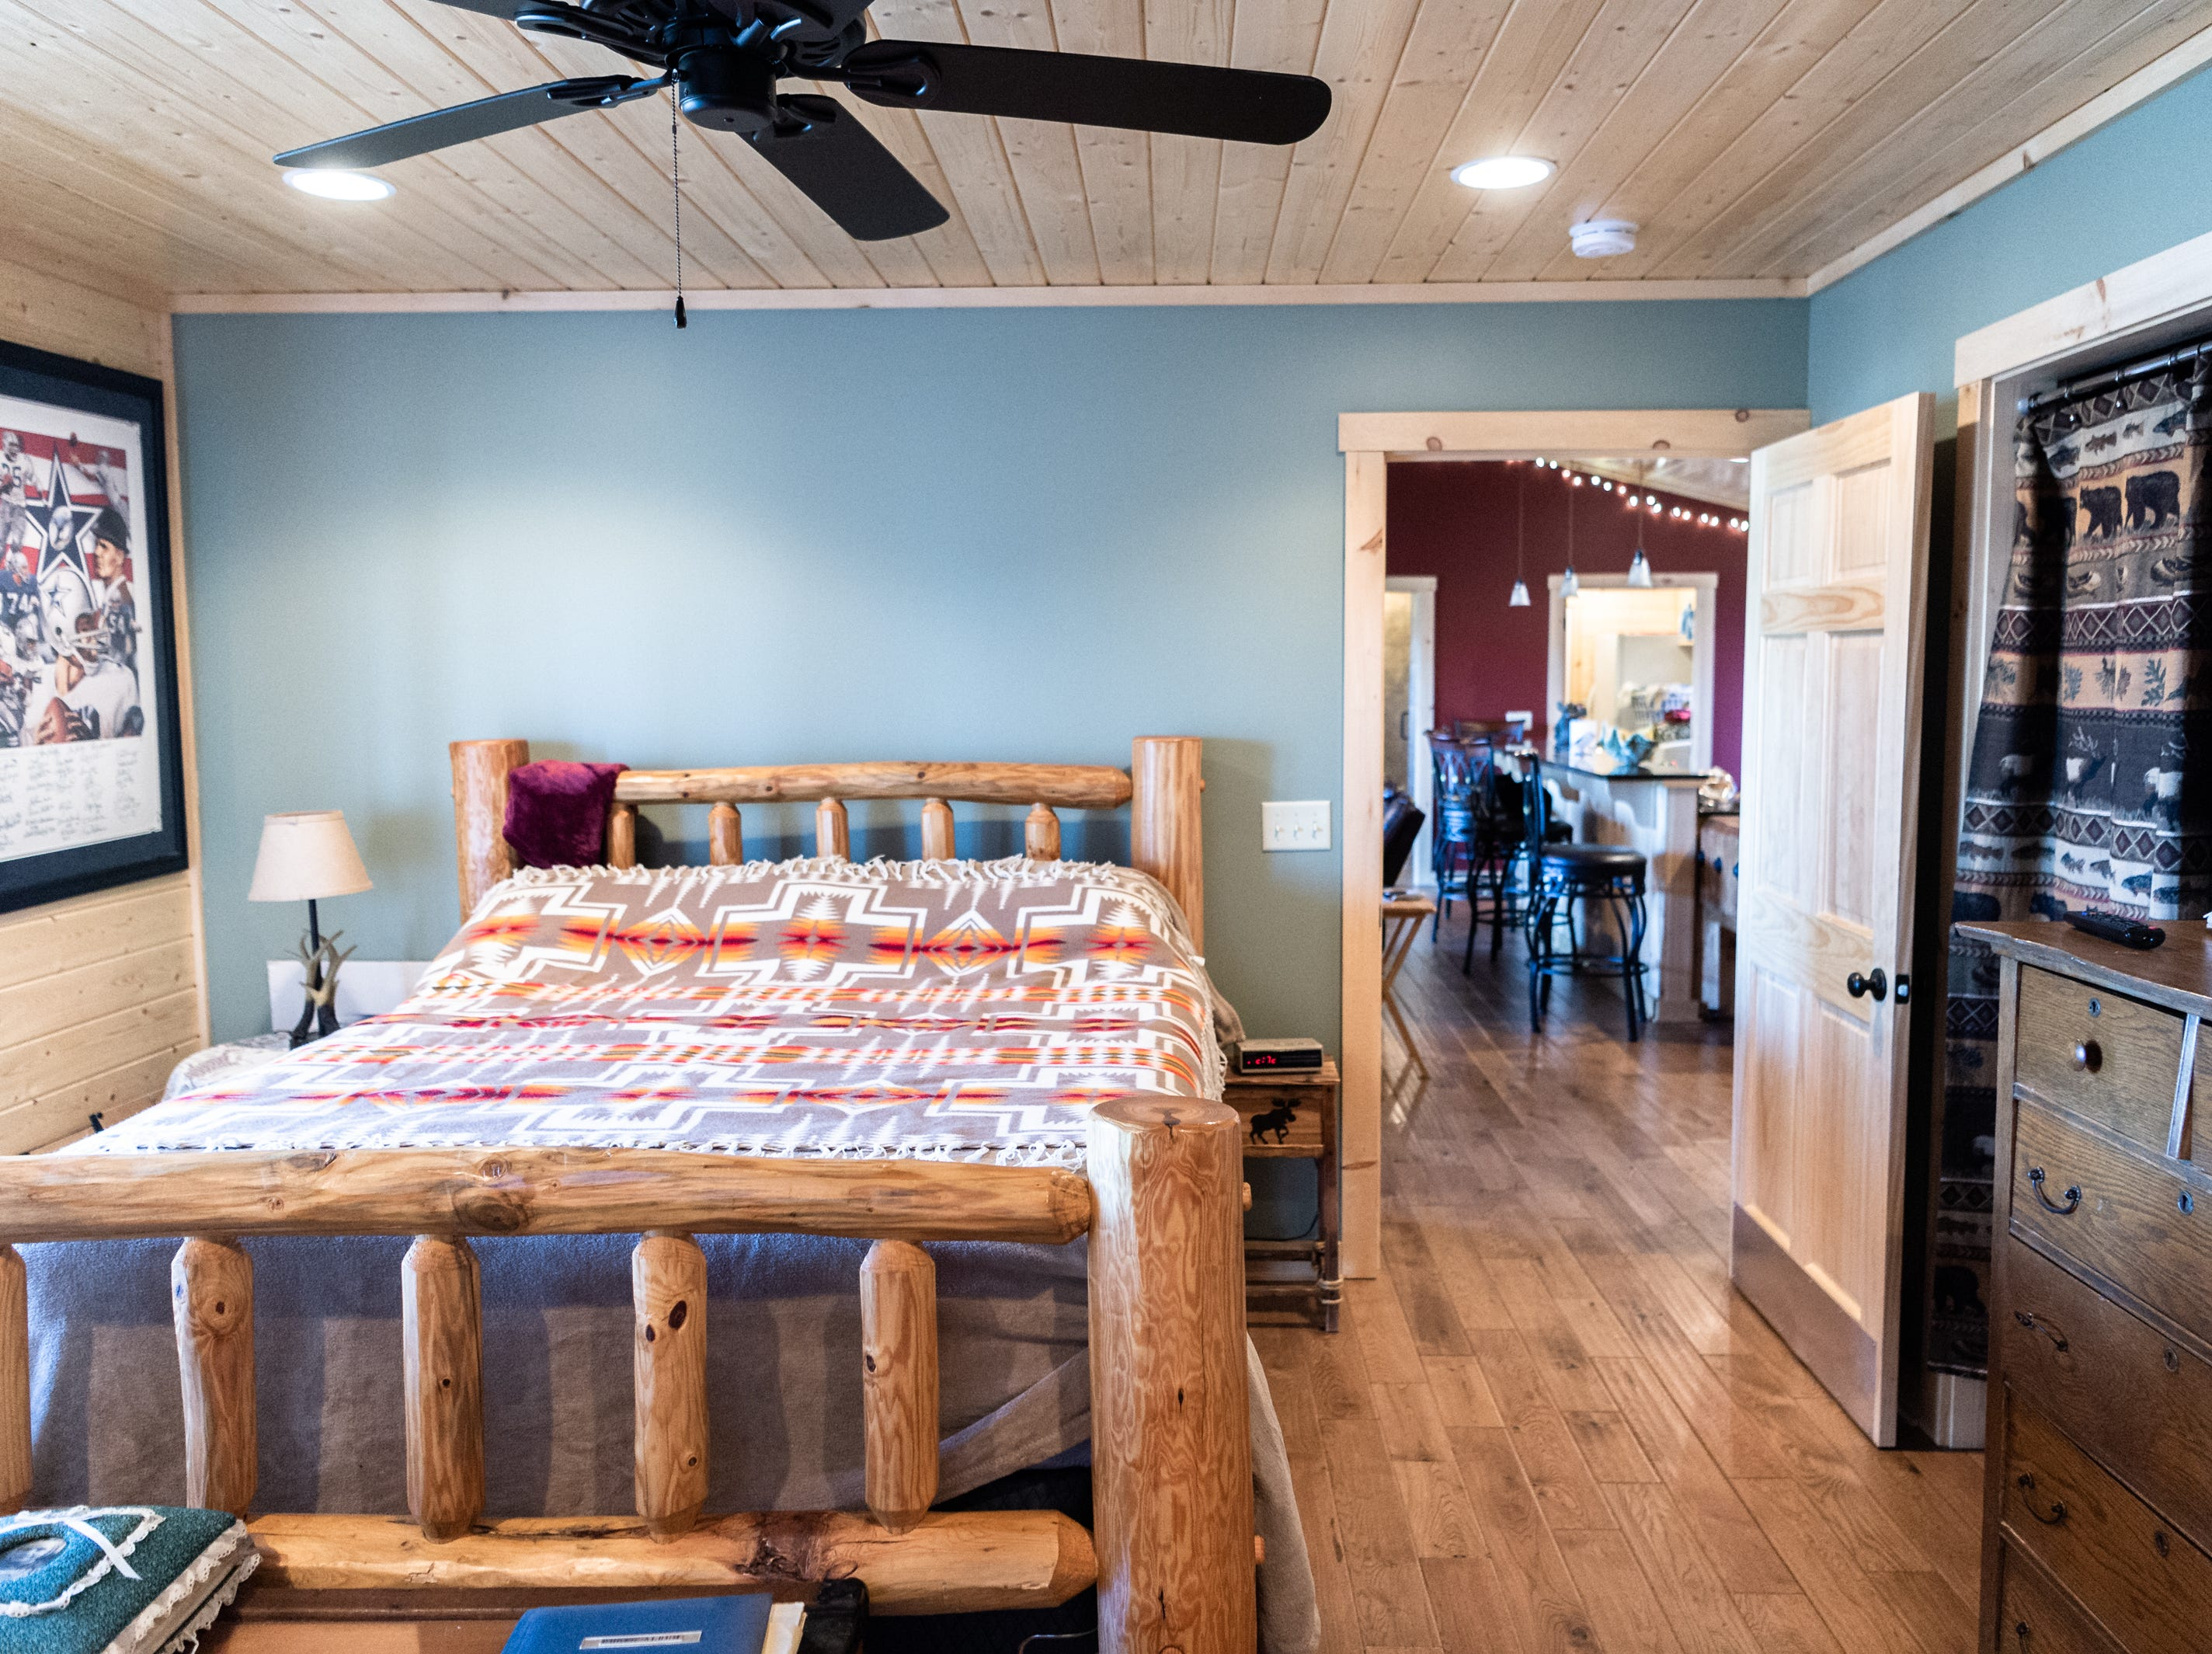 The master bedroom in Vangie Stephens' and Tommy Stephens' log cabin home in Cherokee, designed by Vangie.